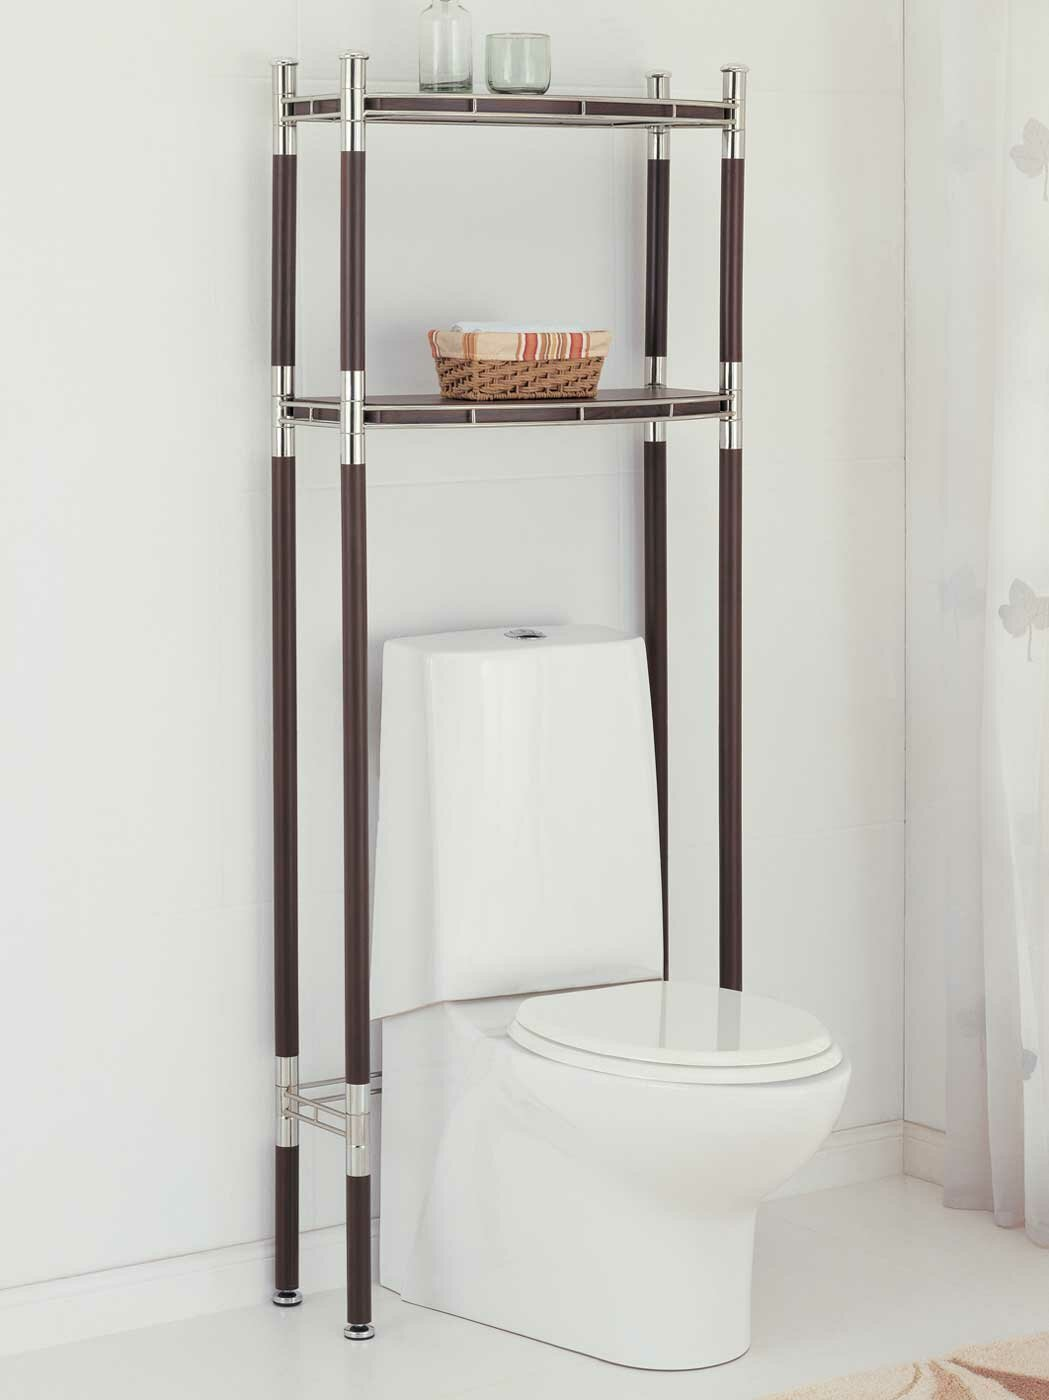 bathroom bathroom space saver shelves toilet etagere toilet etagere. Black Bedroom Furniture Sets. Home Design Ideas